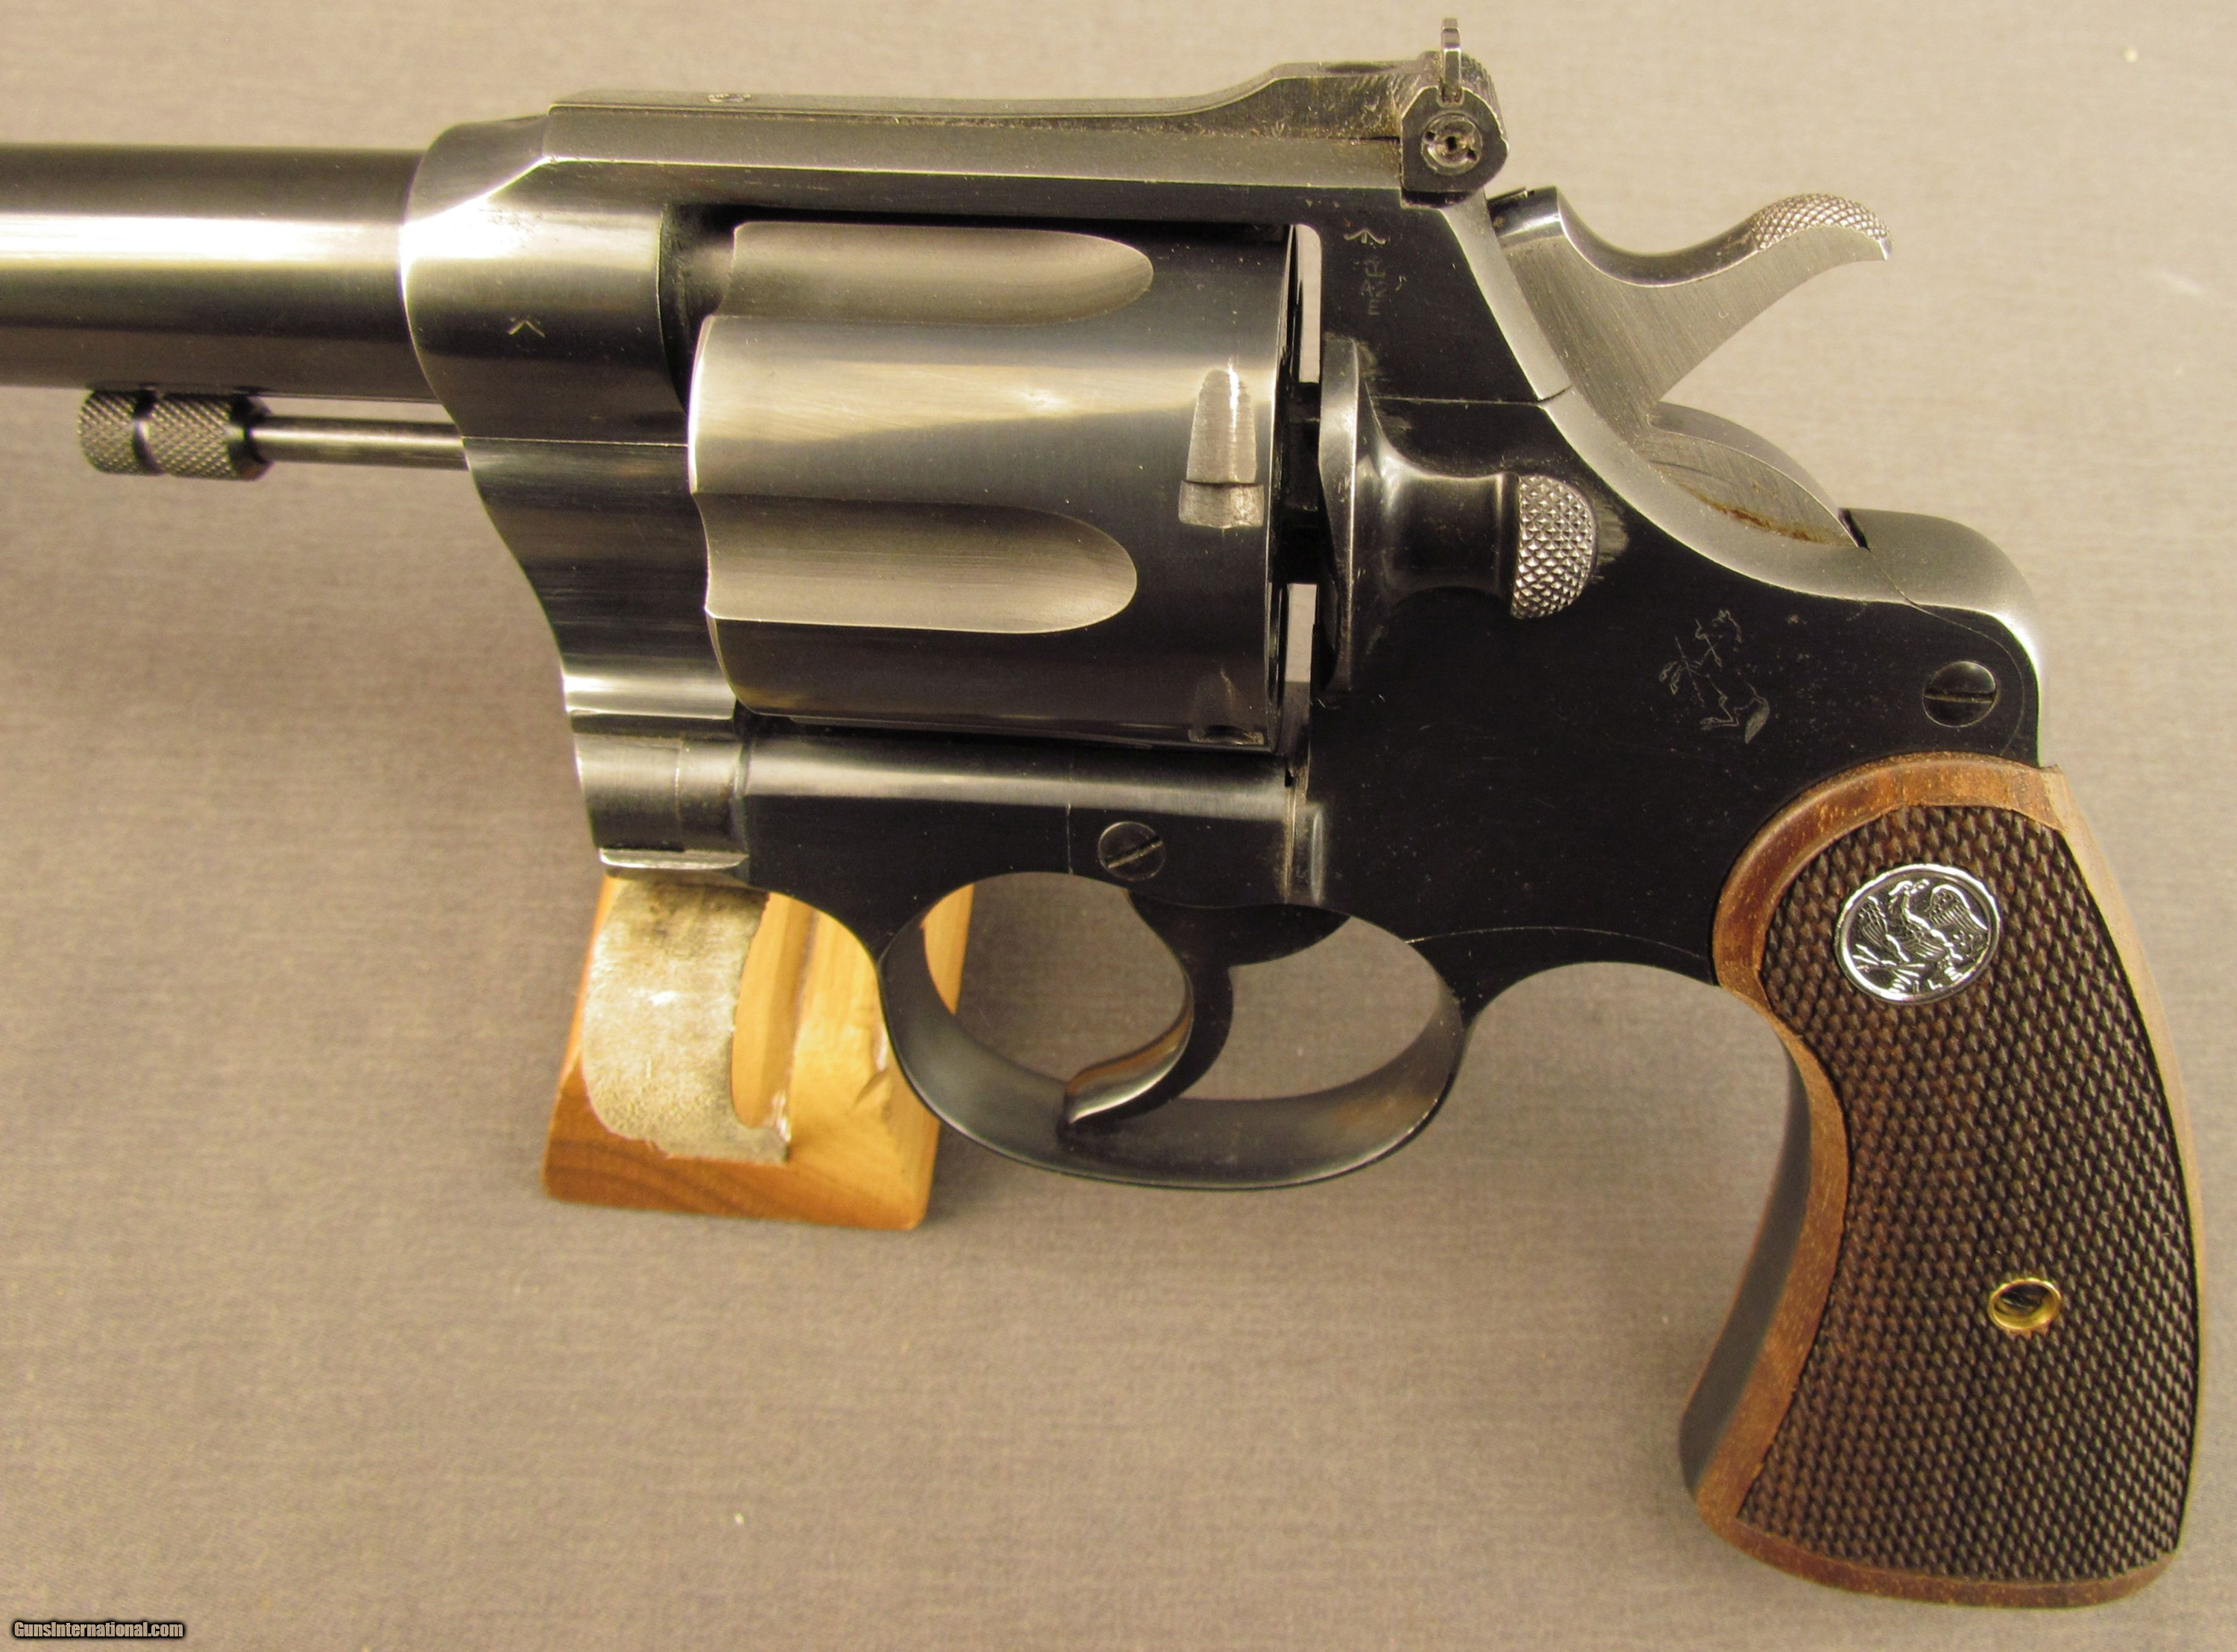 Very Nice Custom New Service Target Revolver w/ Two Cylinders